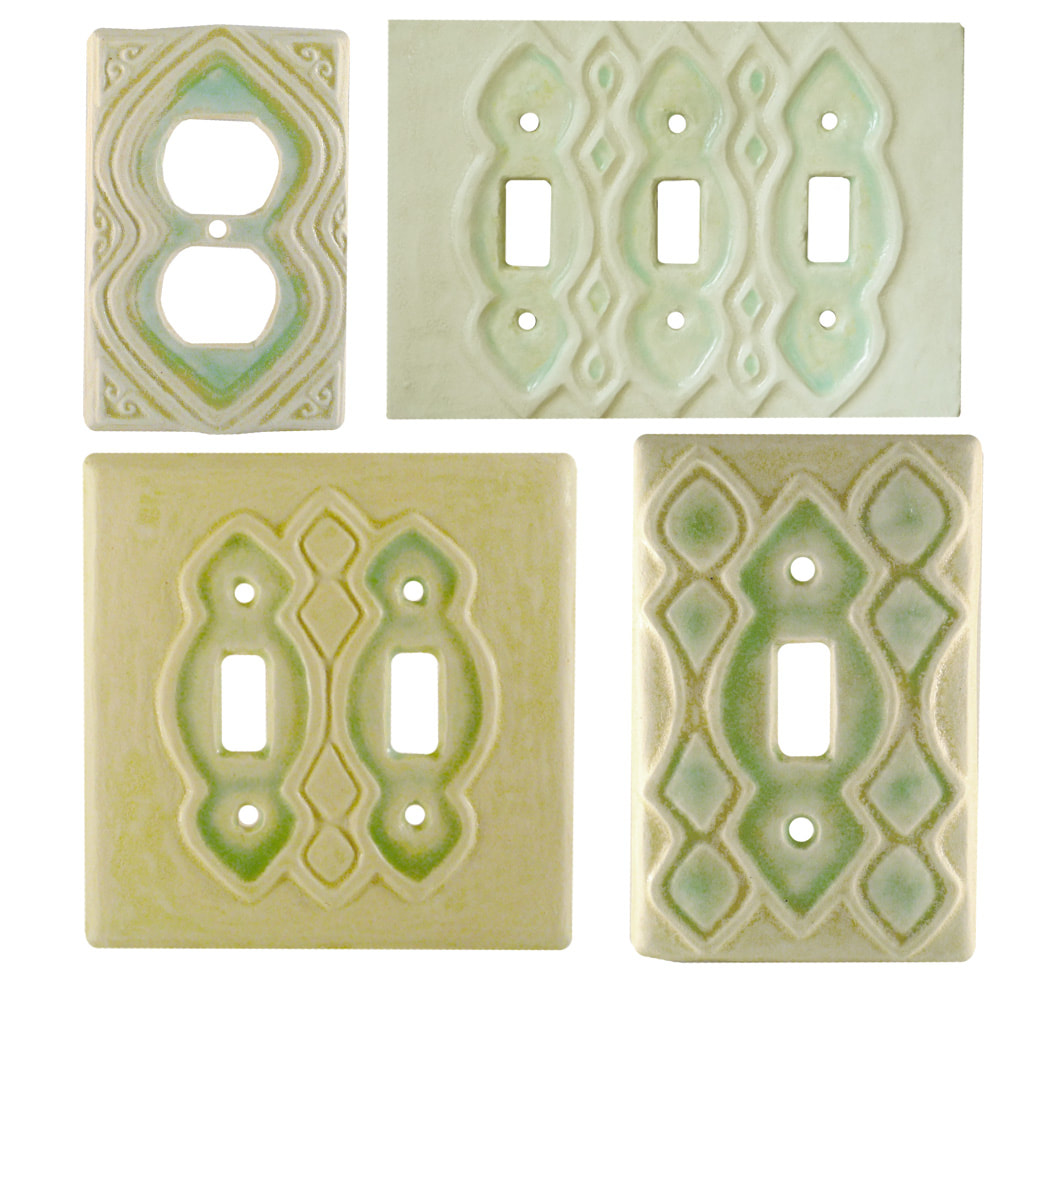 Awesome Wall Ceramic Art Component - All About Wallart - adelgazare.info